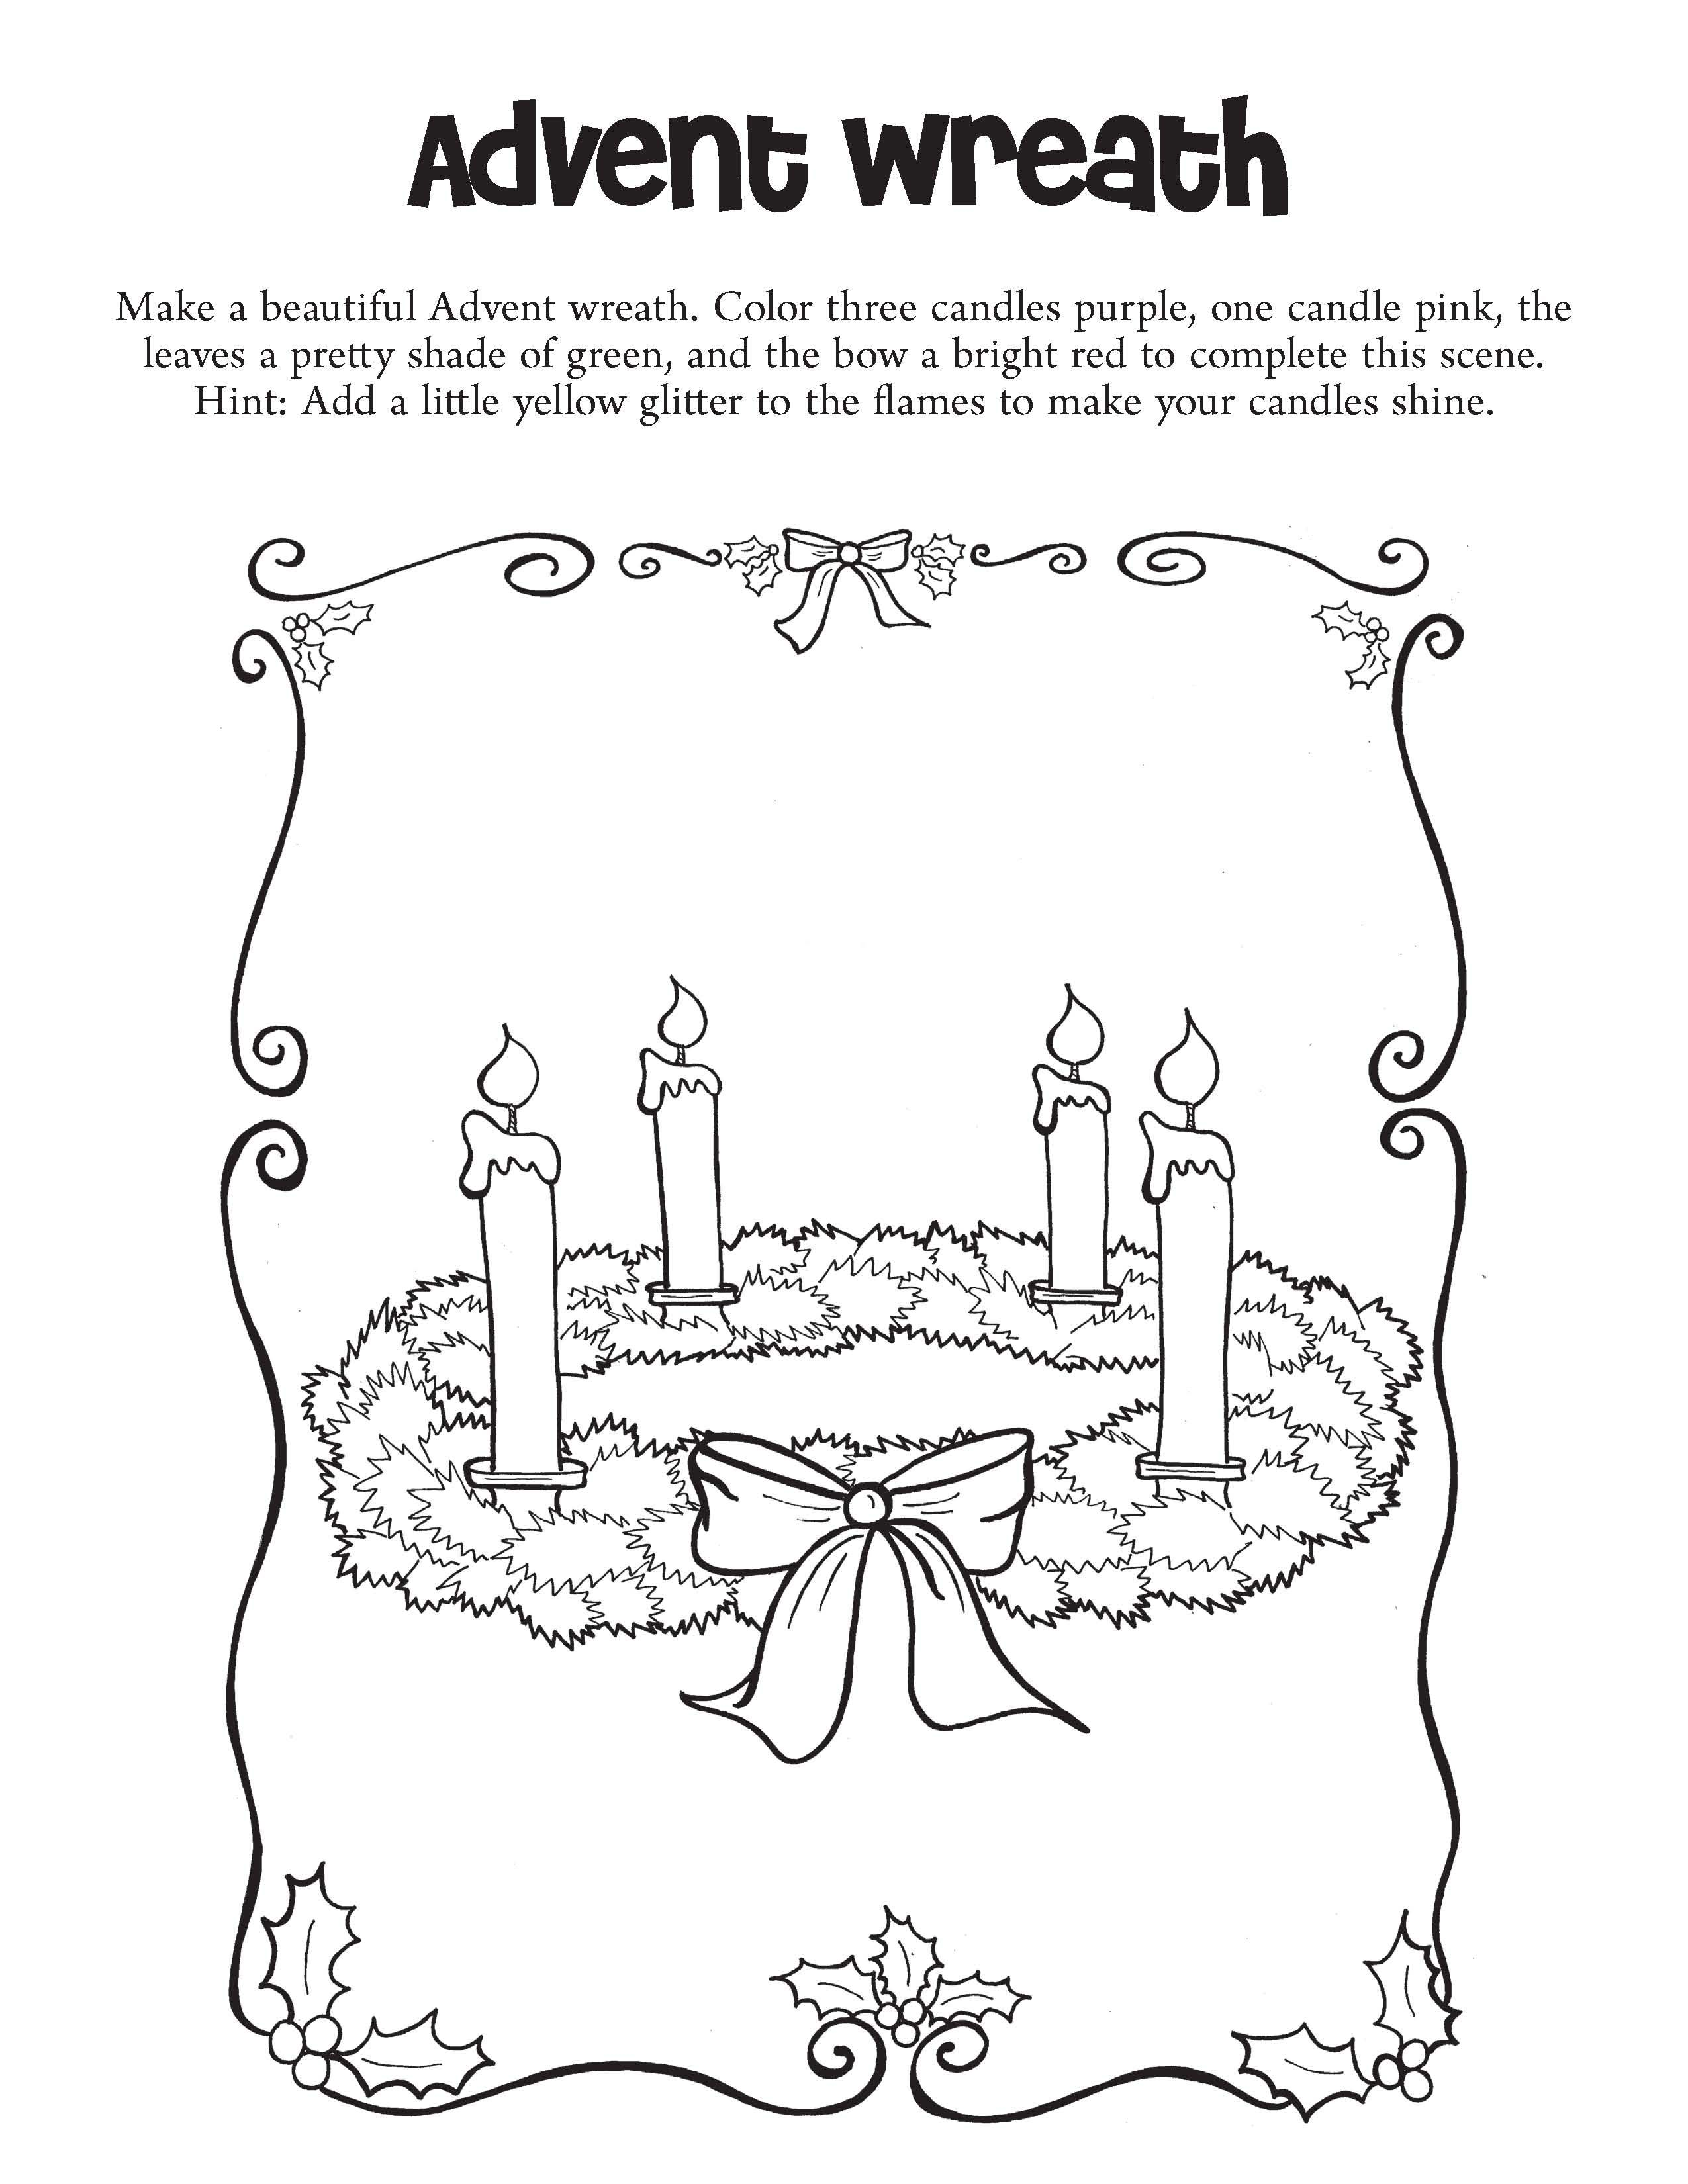 coloring pages advent wreath - photo#23